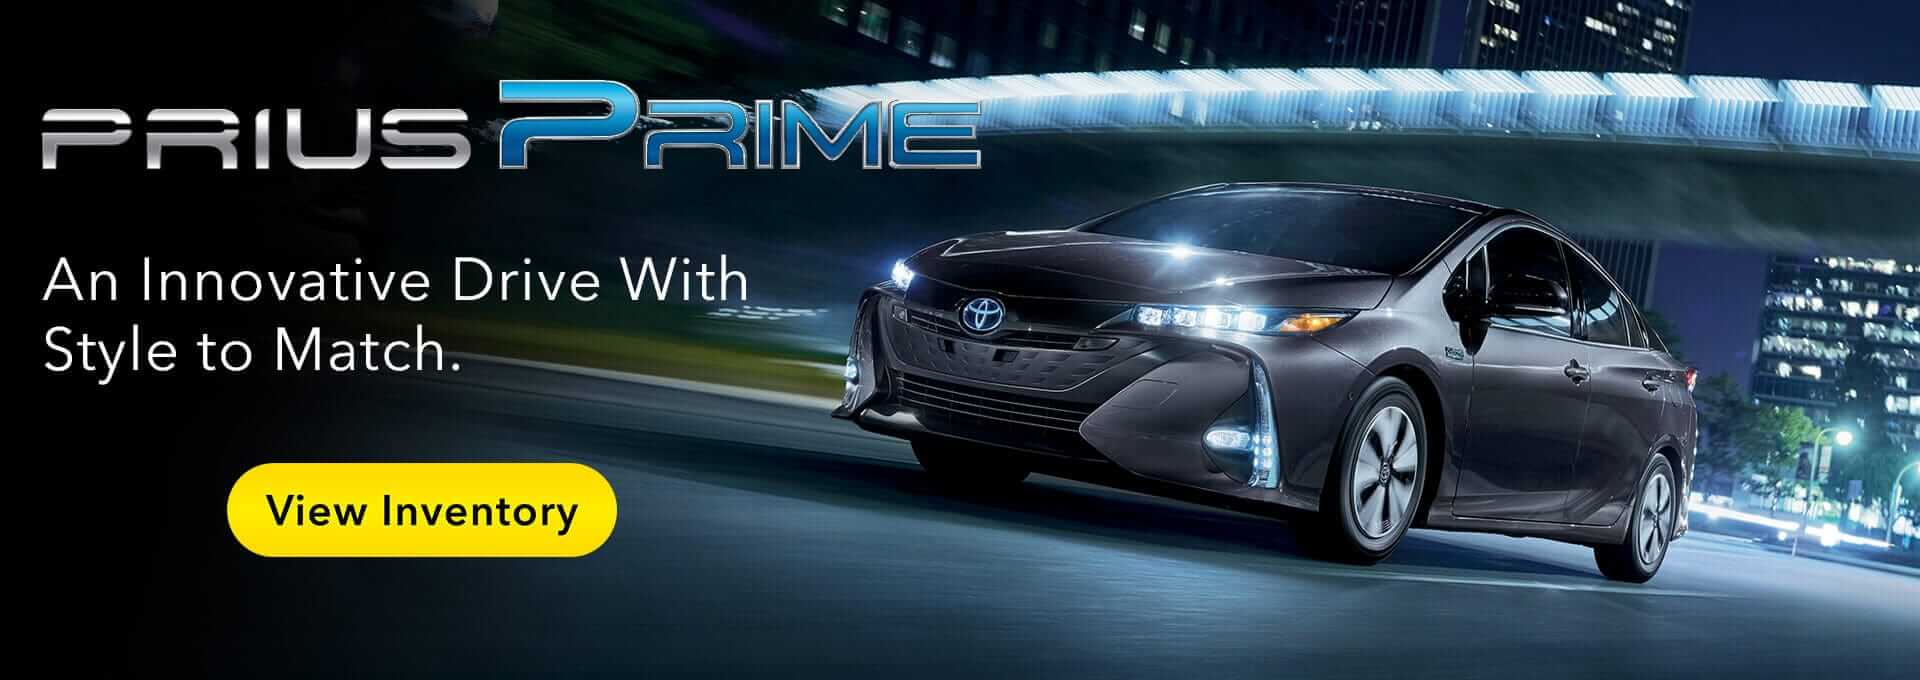 Prius Prime Canned